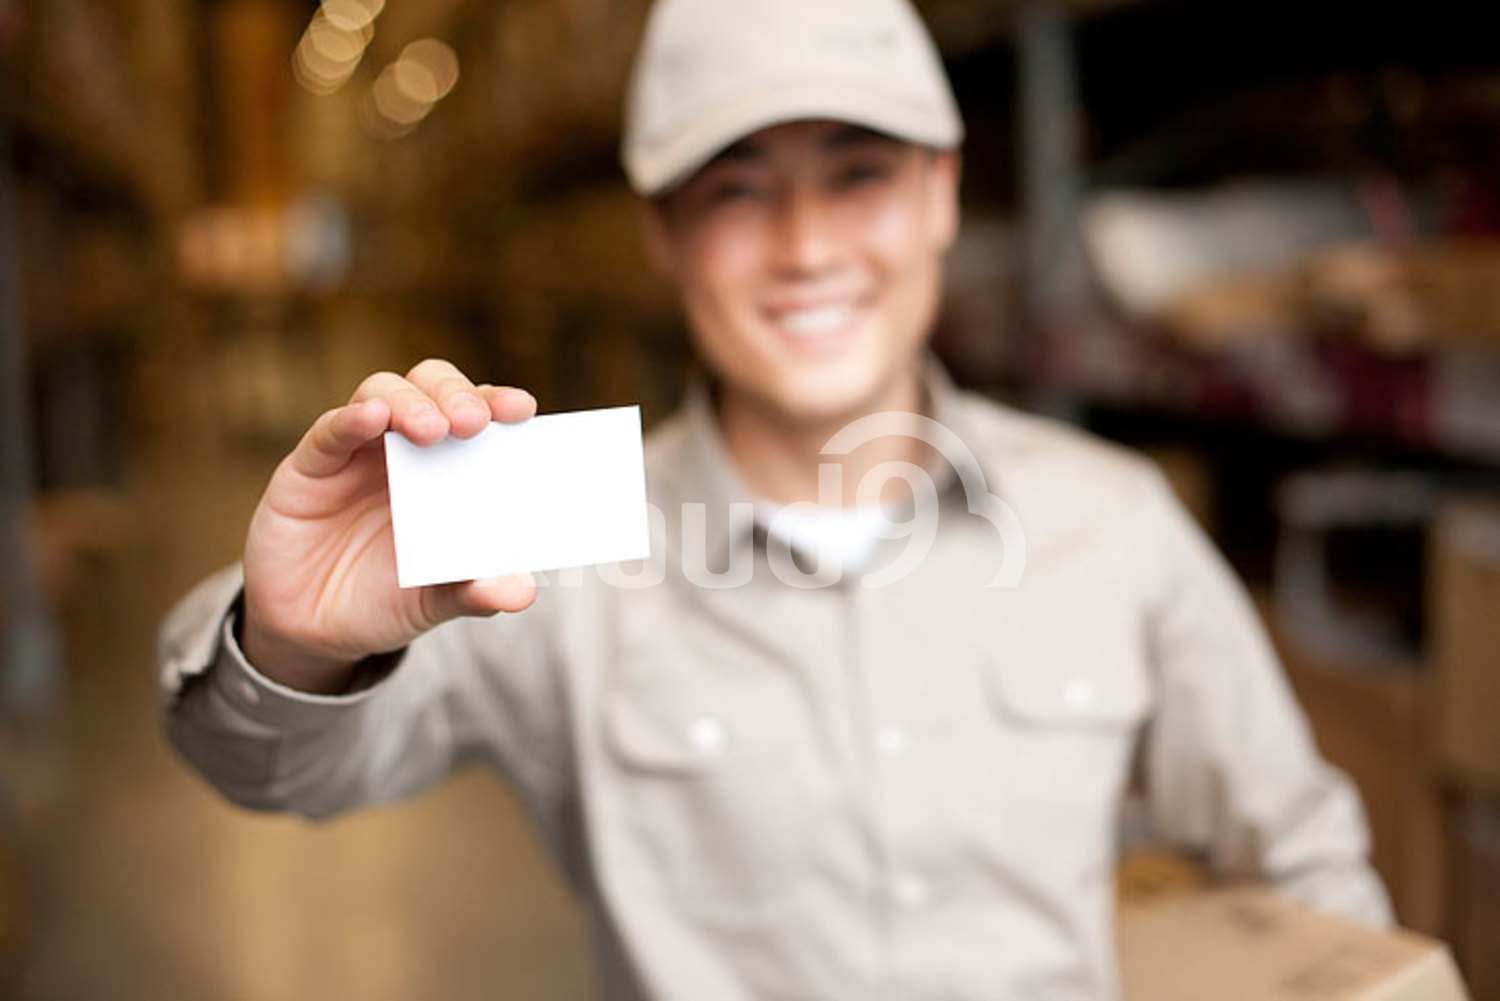 Male Chinese warehouse worker holding up a blank business card